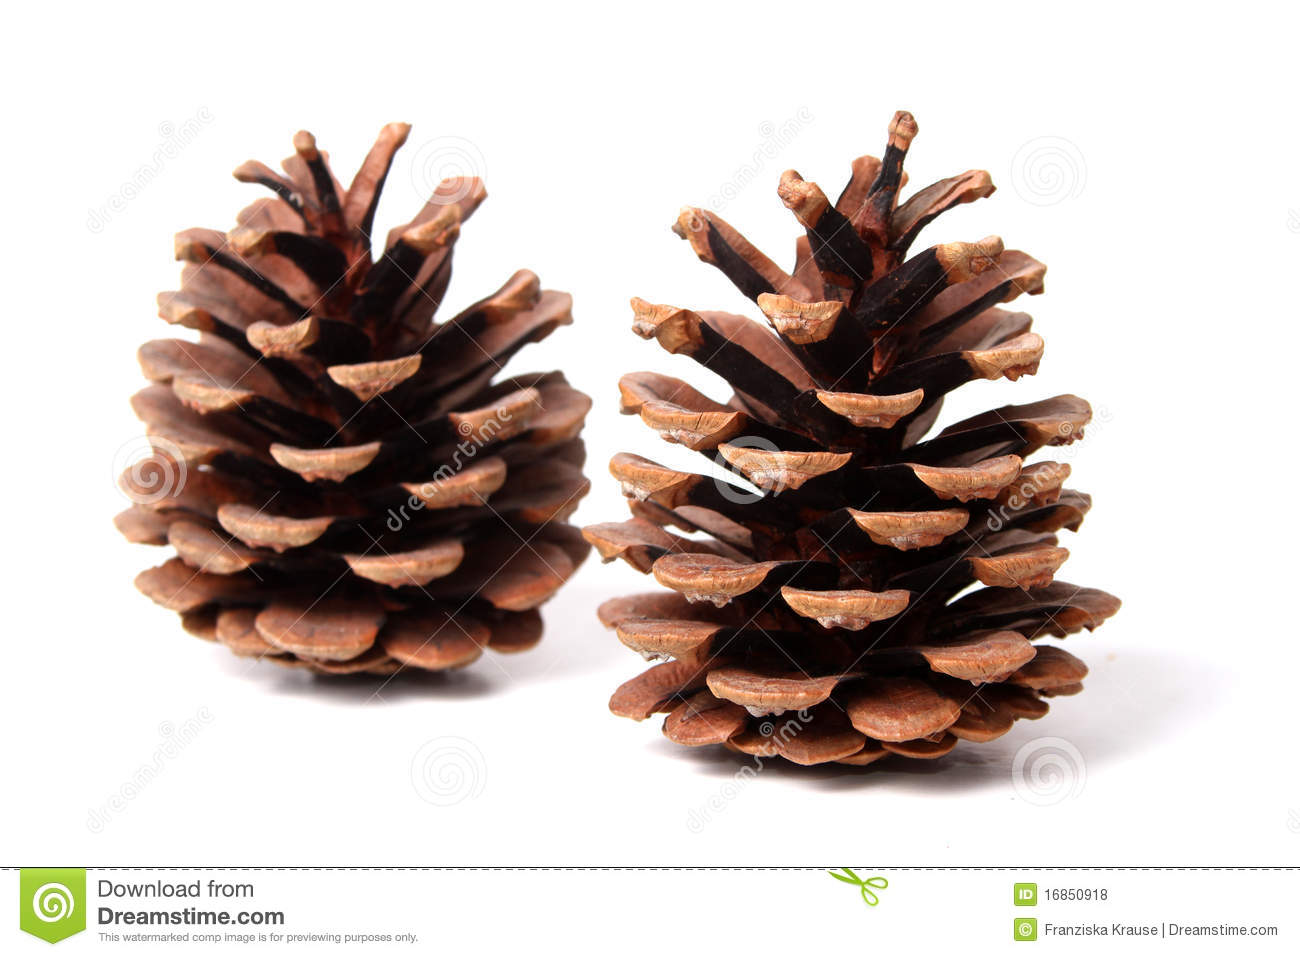 Two fir cones in front of a white background.